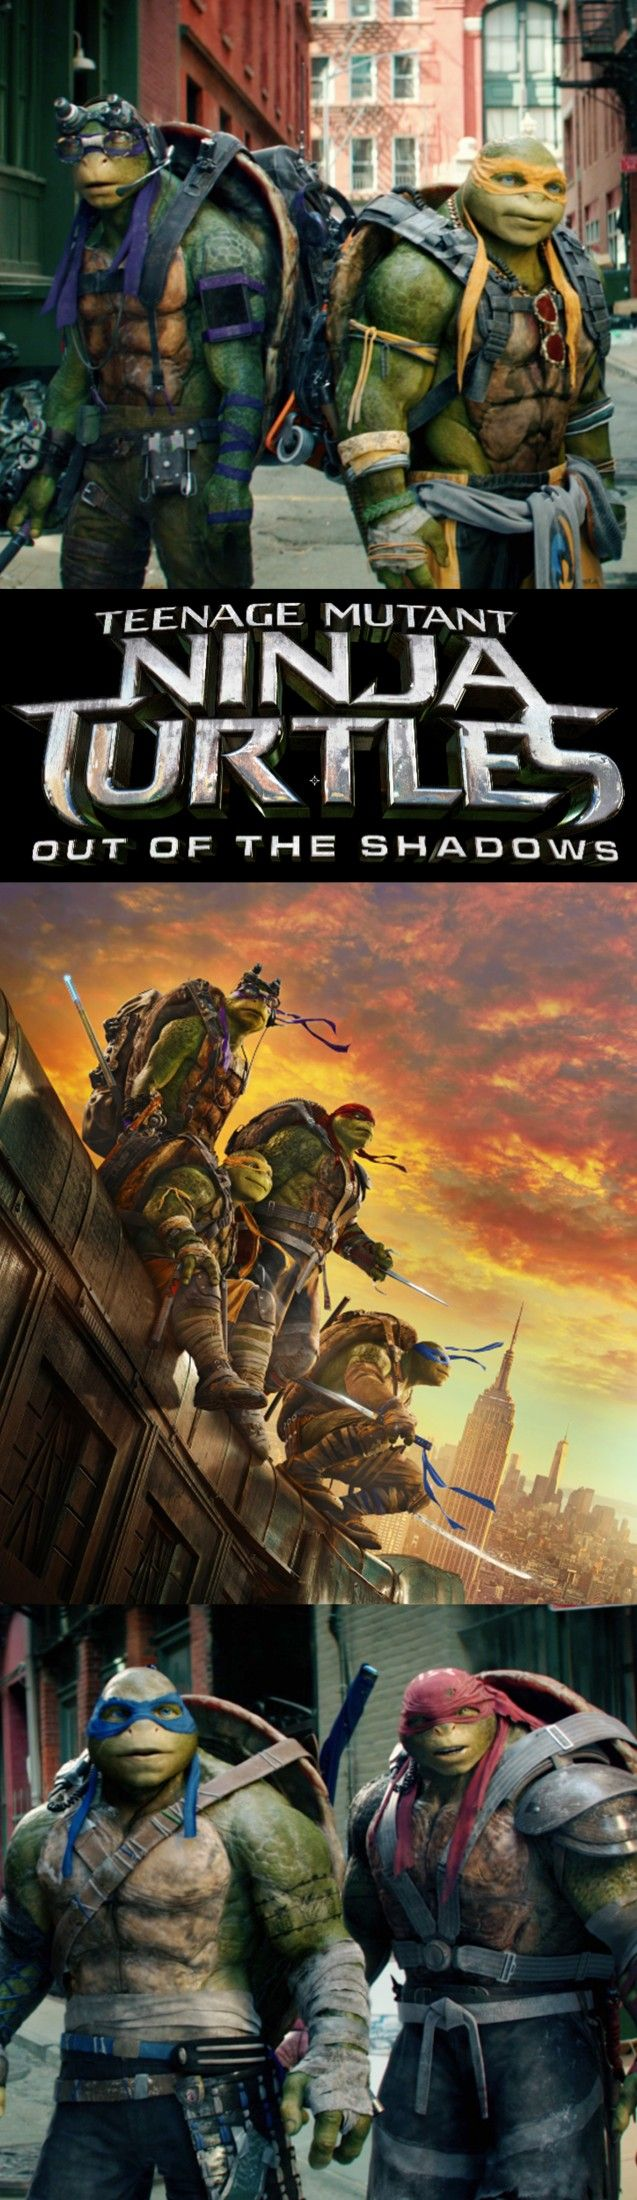 Your favorite turtles are back to save the day. See Teenage Mutant Ninja Turtles: Out of the Shadows, in theaters June 3, 2016.